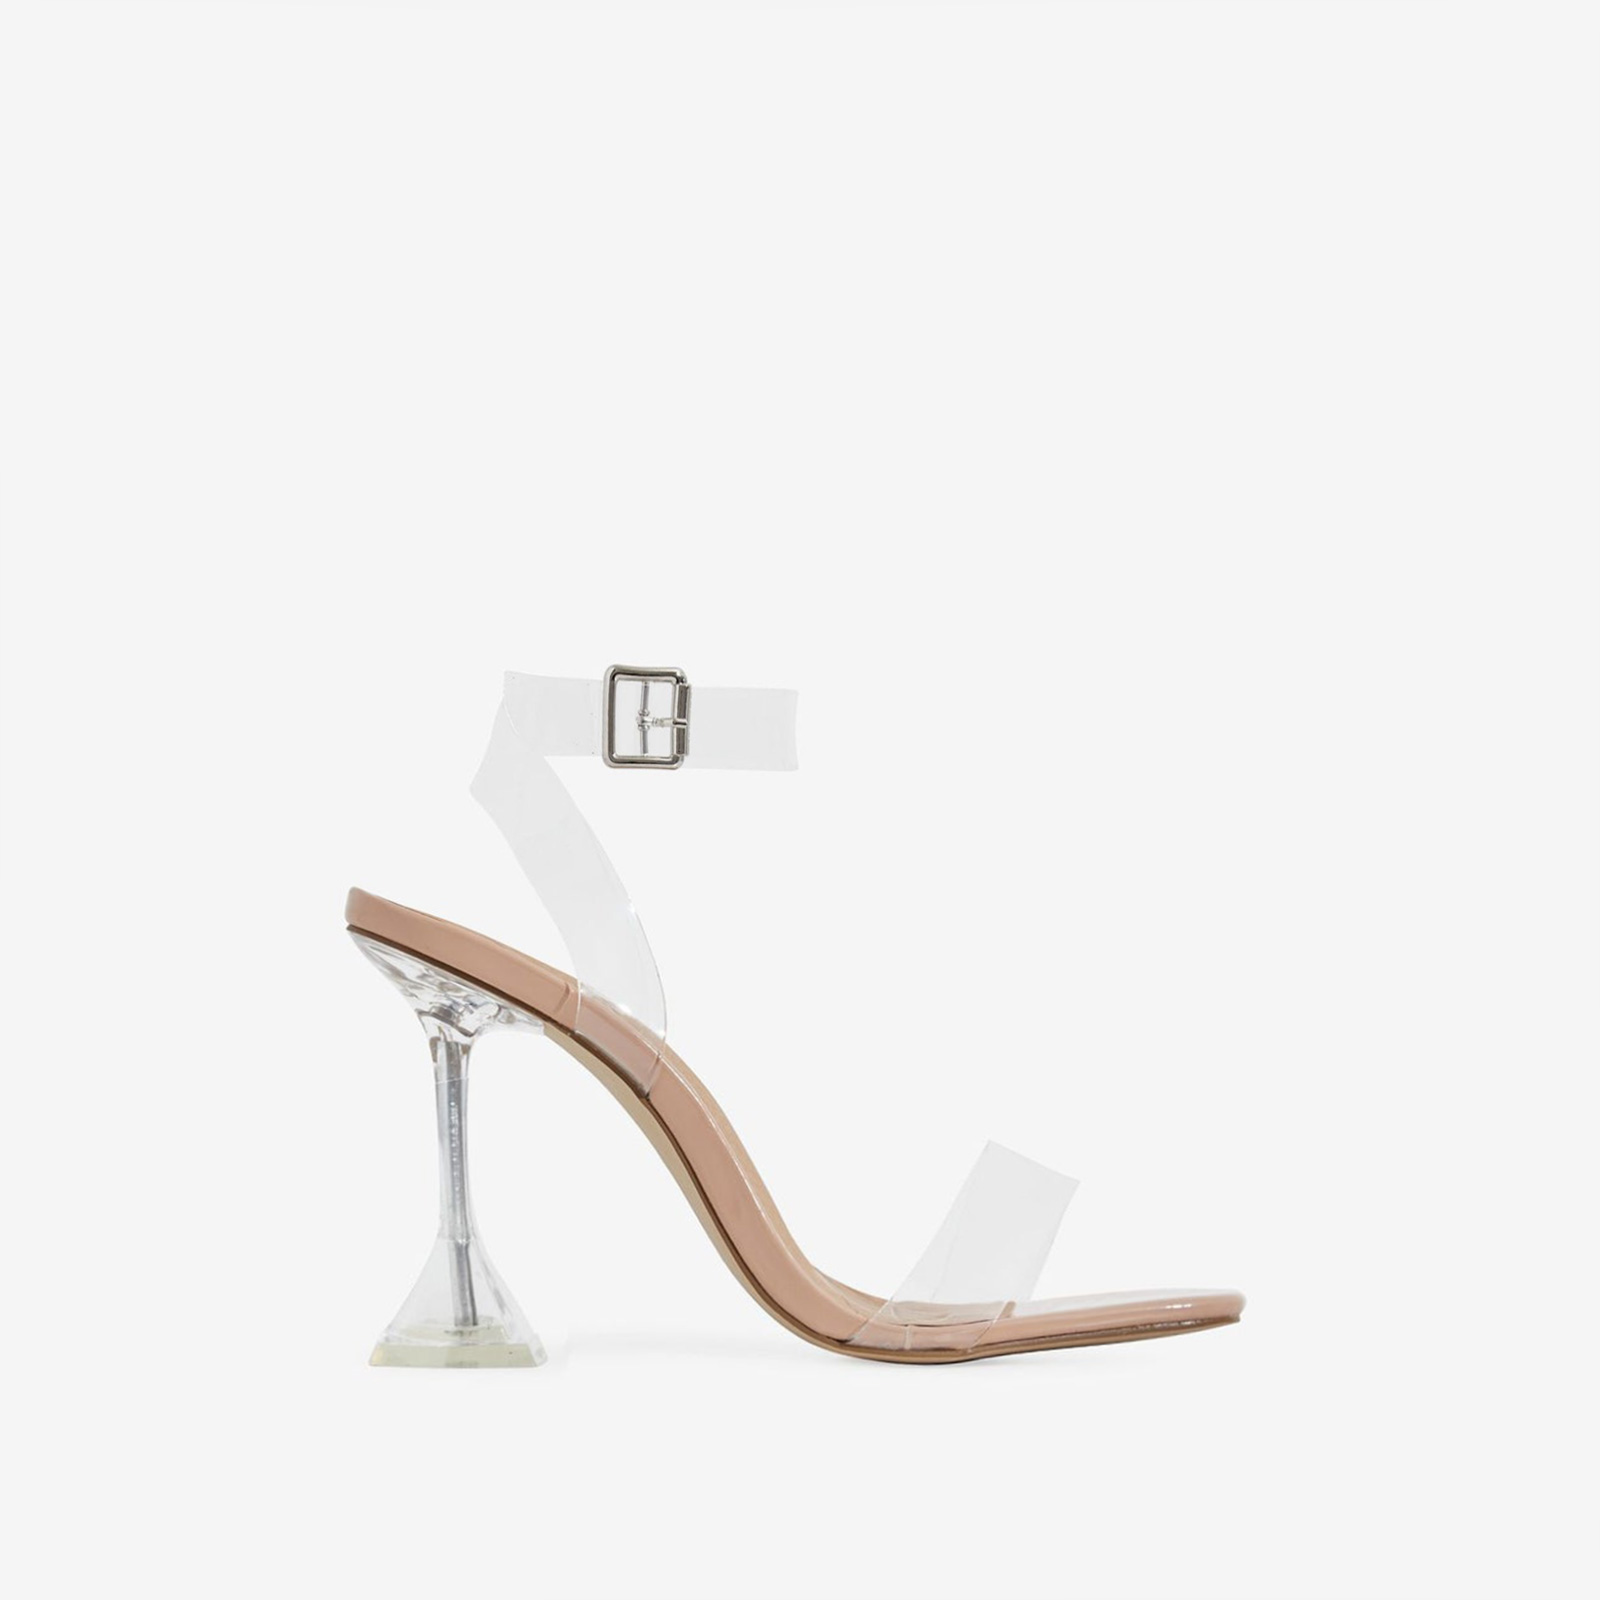 Marca Barley There Square Toe Perspex Heel In Nude Patent